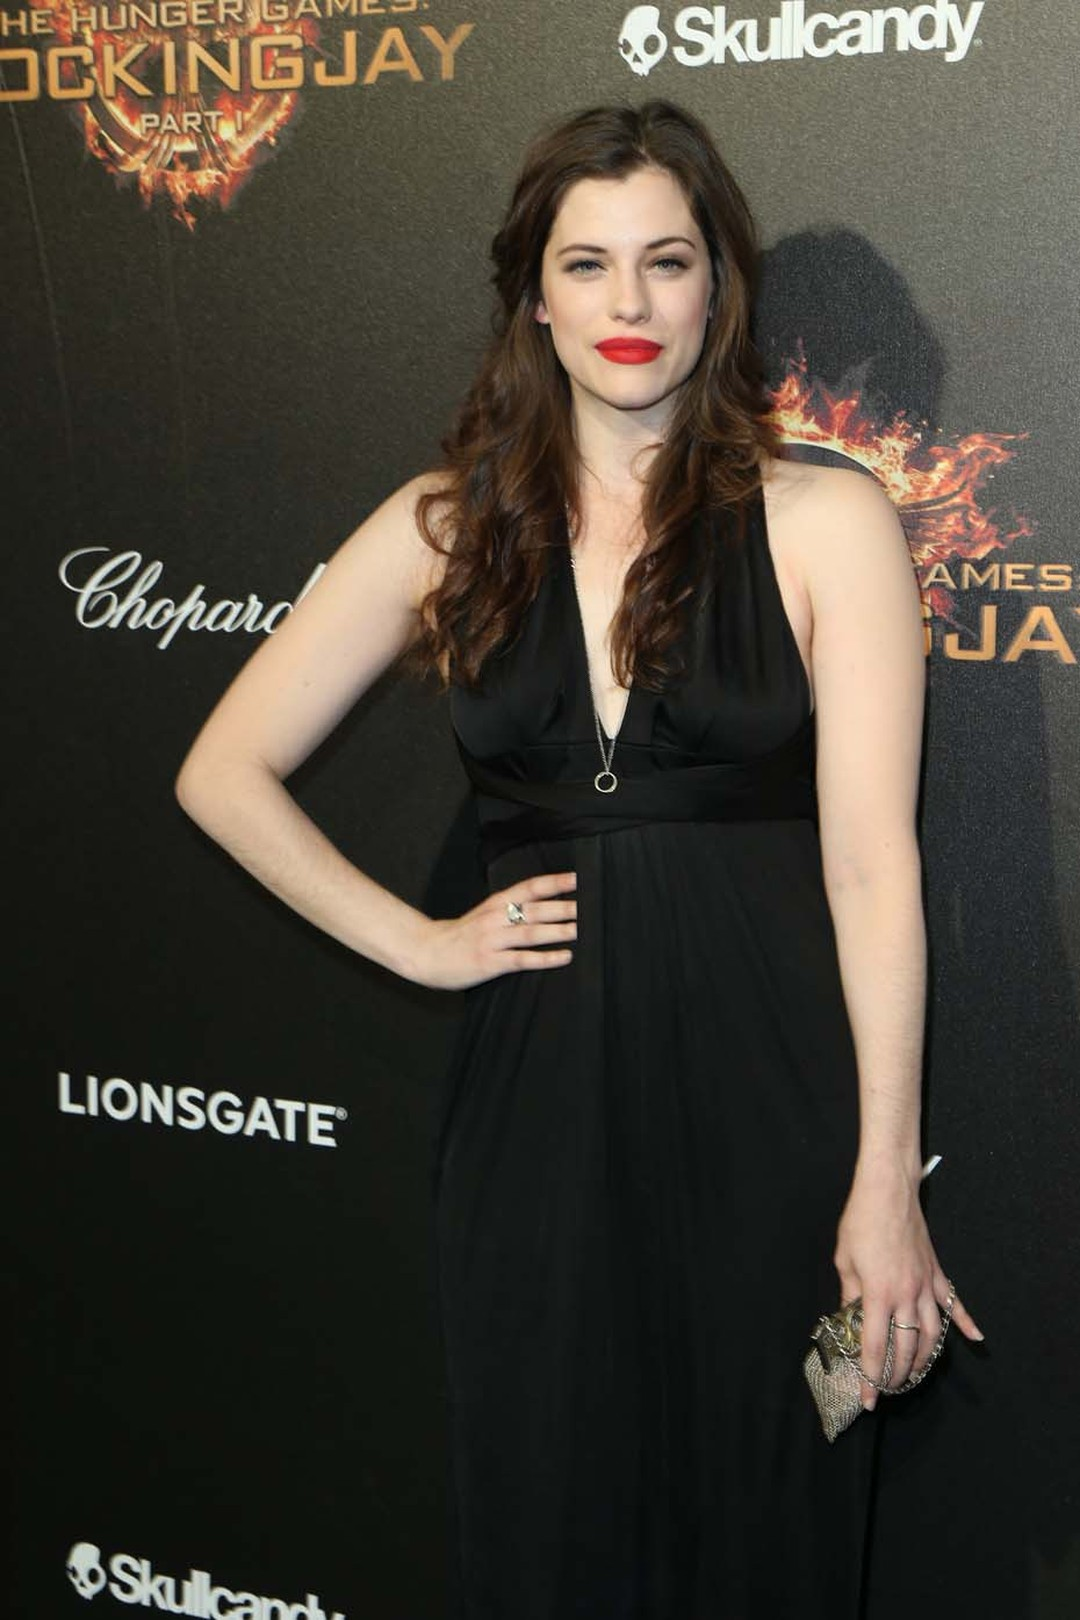 Mina Murray at the Hunger Games party wearing Chopard.